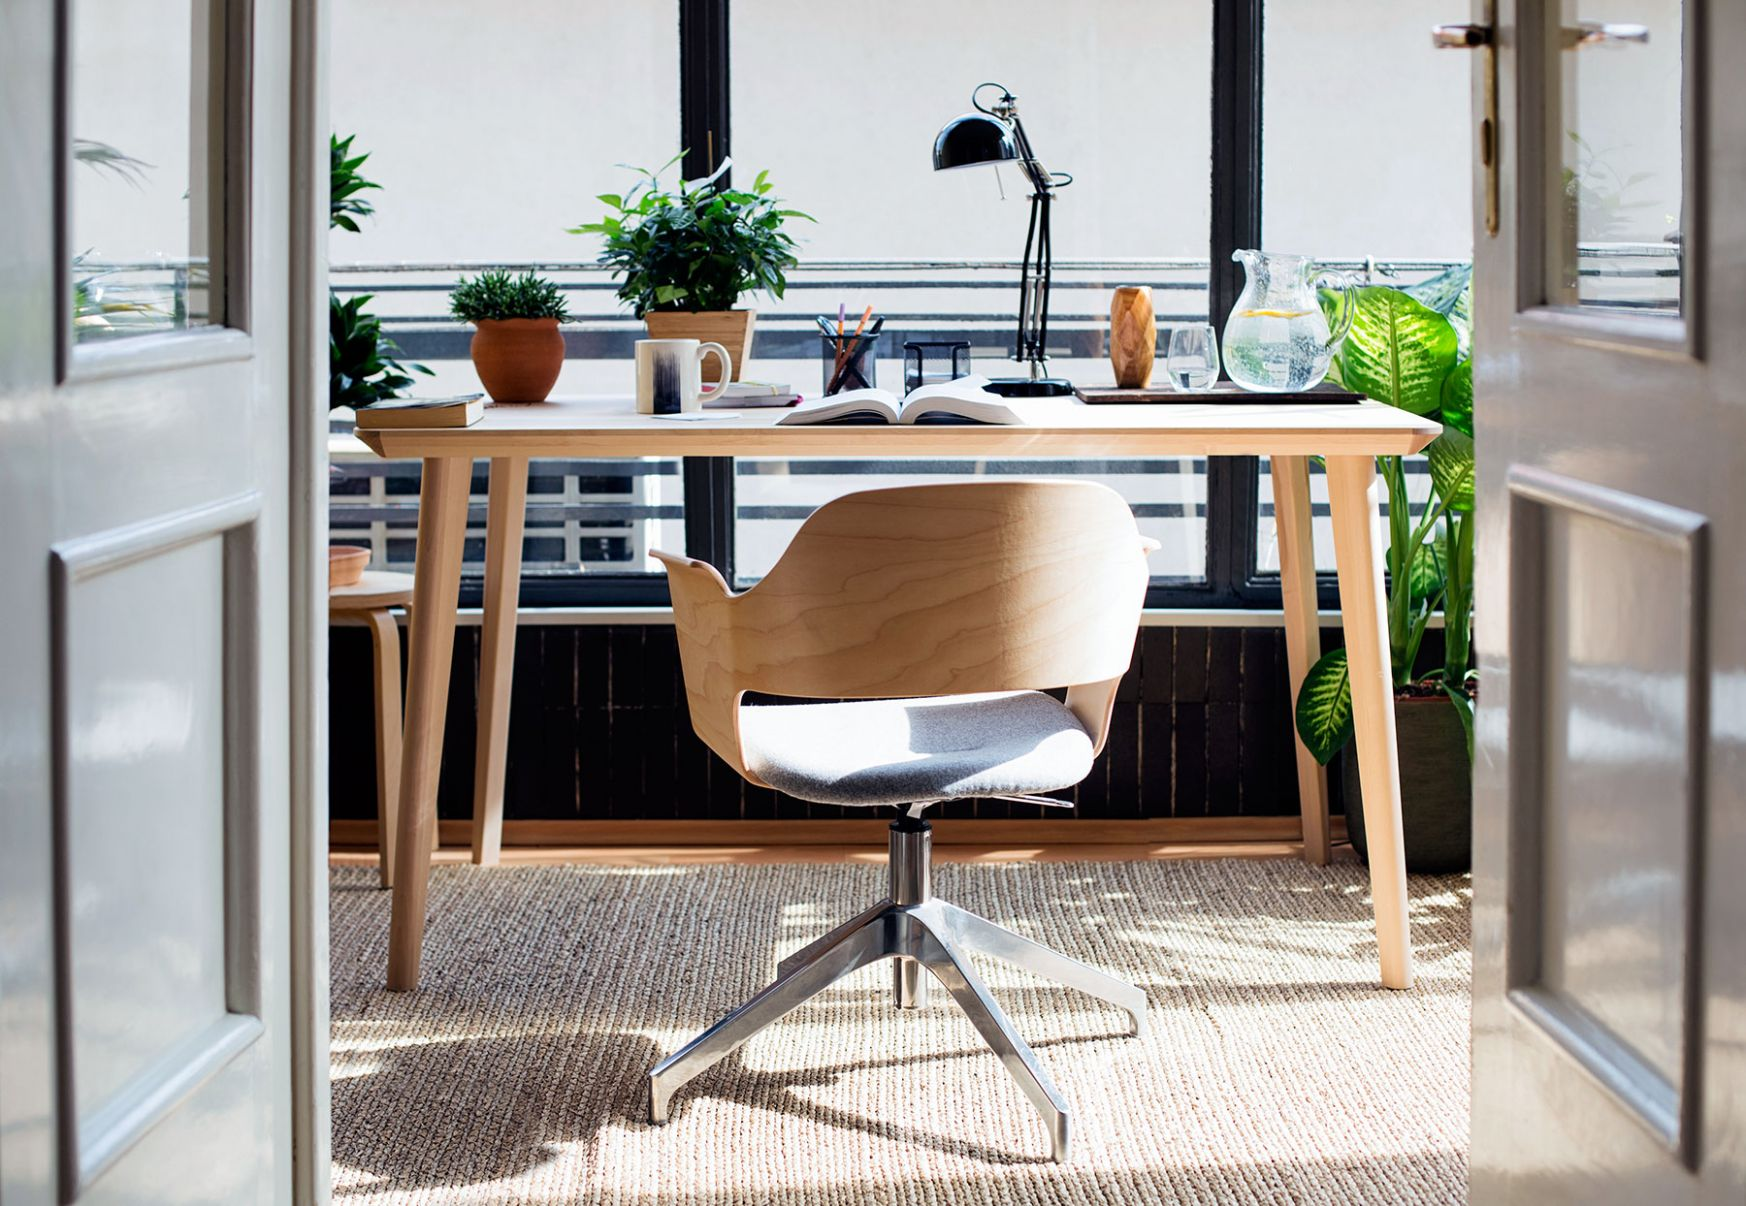 12 Home Office Ideas That Will Make You Want to Work All Day ...